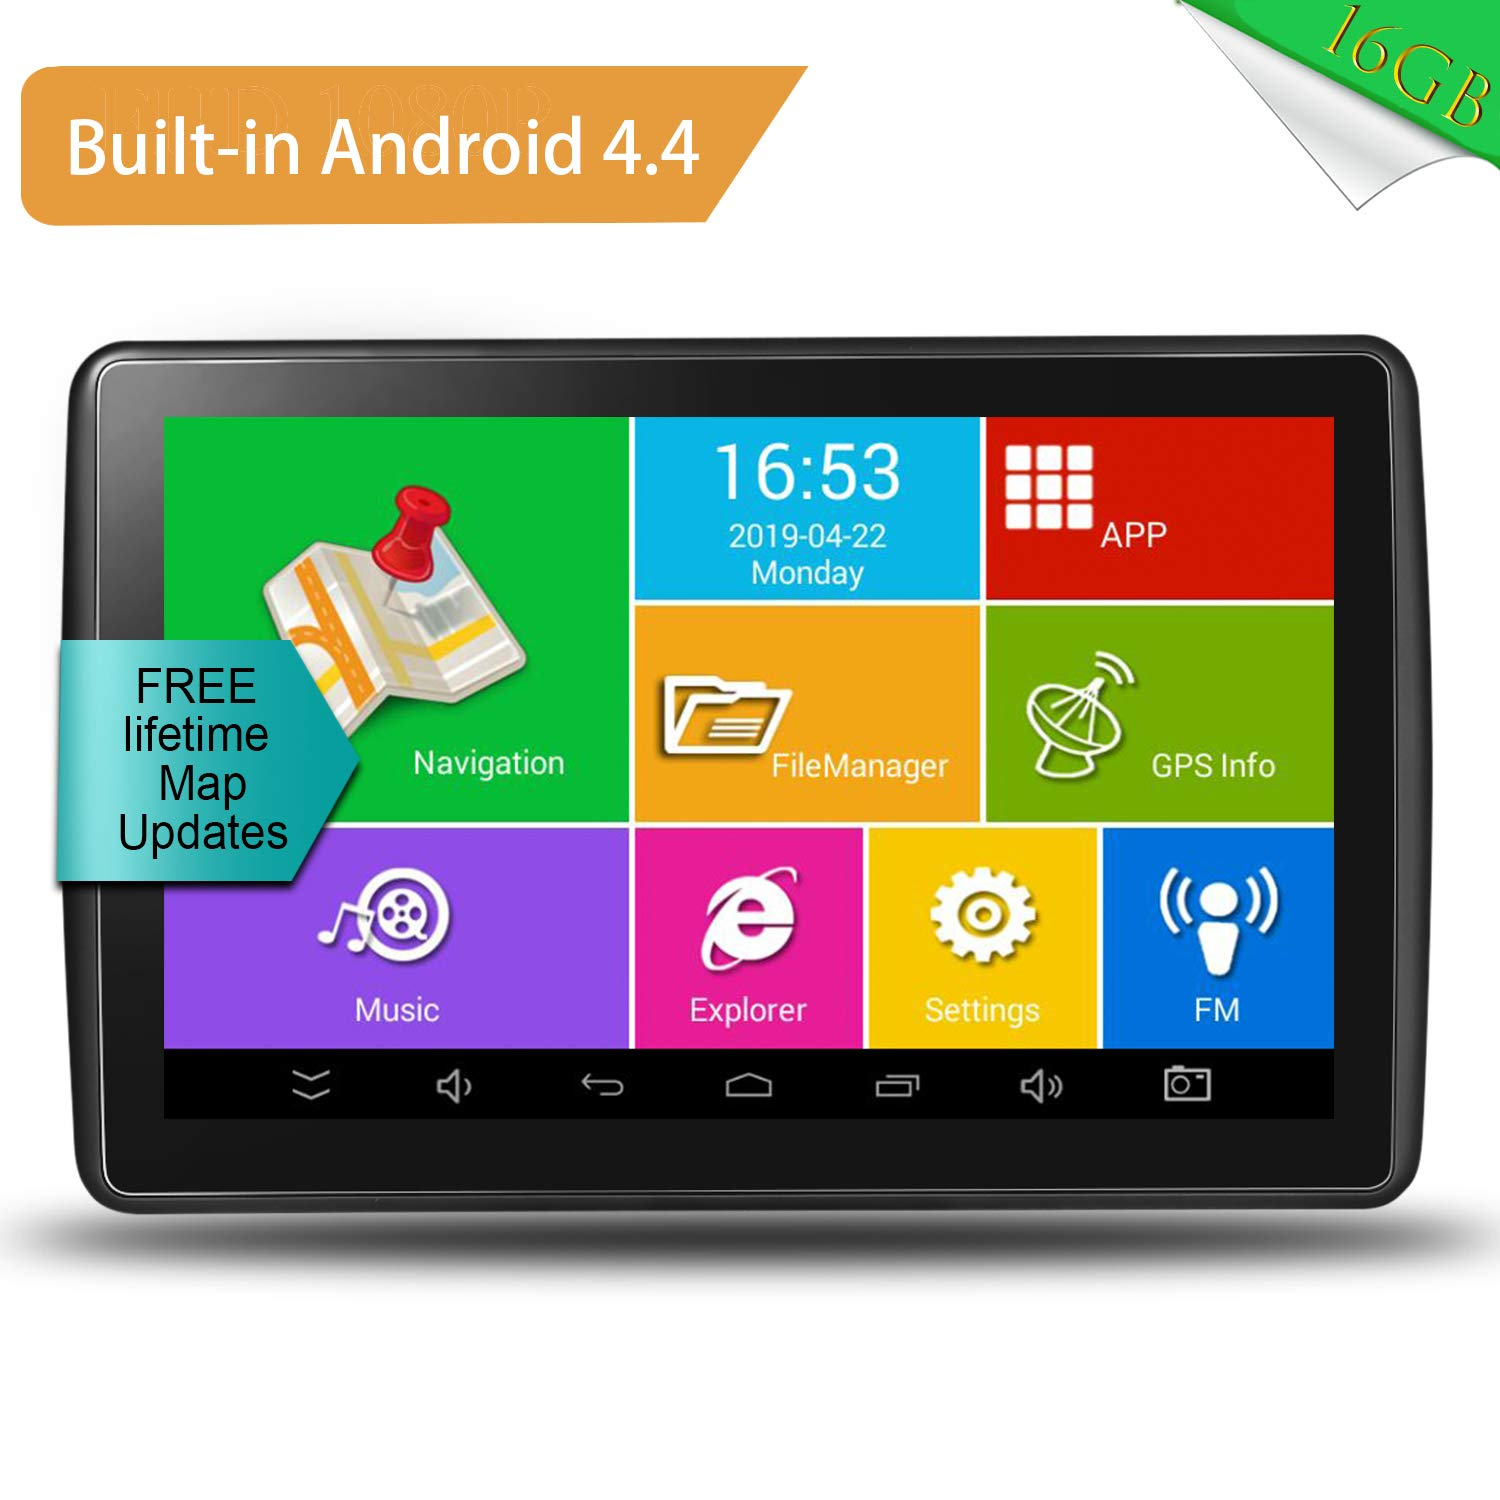 7 Inch 16GB HD Touch Screen Built-in Android System GPS Navigation System Spoken Turn-by-Turn Directions for Car Vehicle GPS Navigator with Lifetime Map Update GPS Navigation for Car